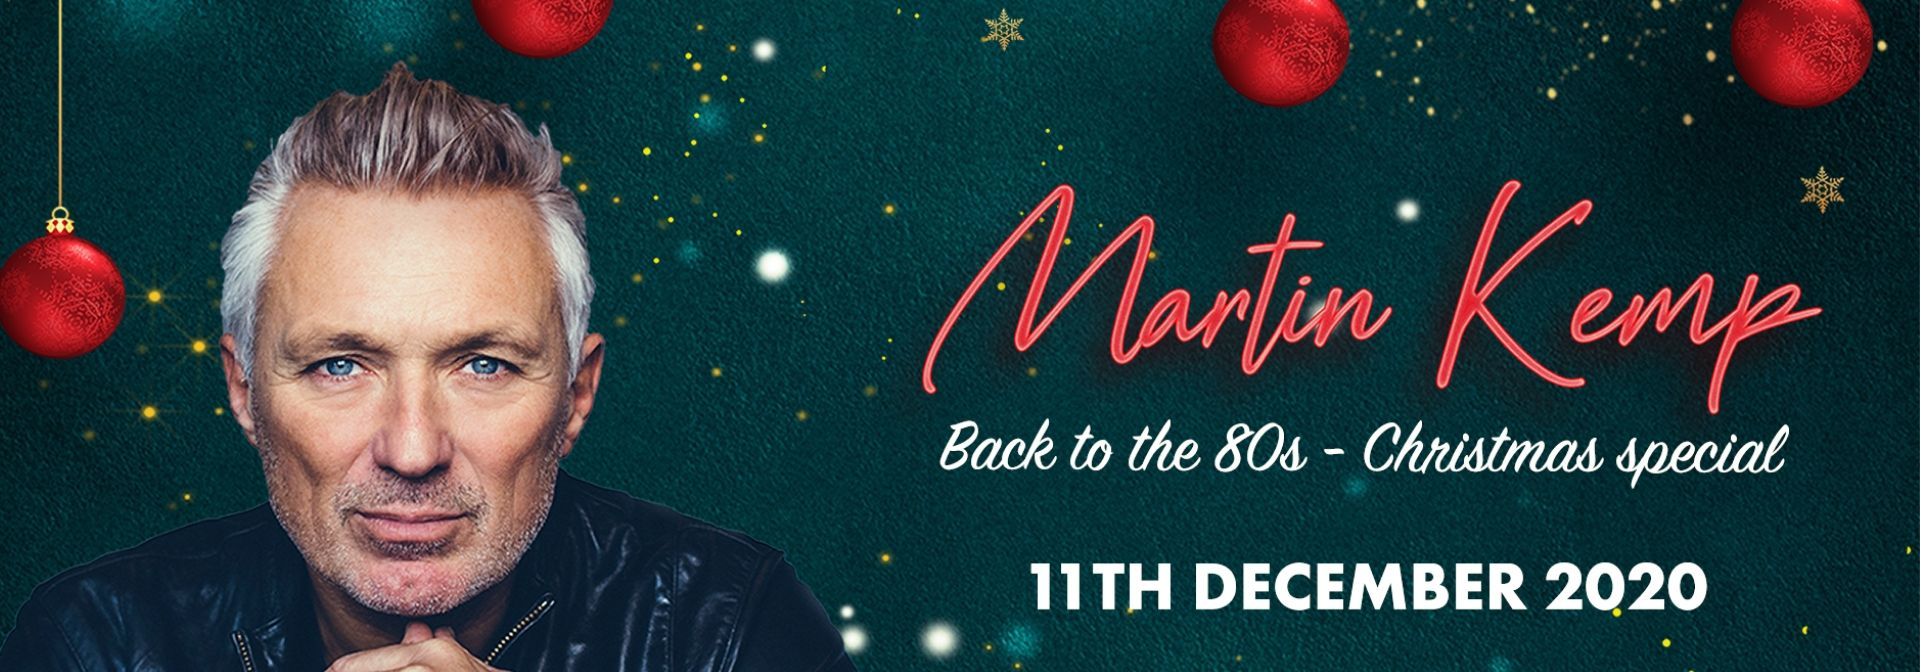 Martin Kemp - Back to the 80's Tour